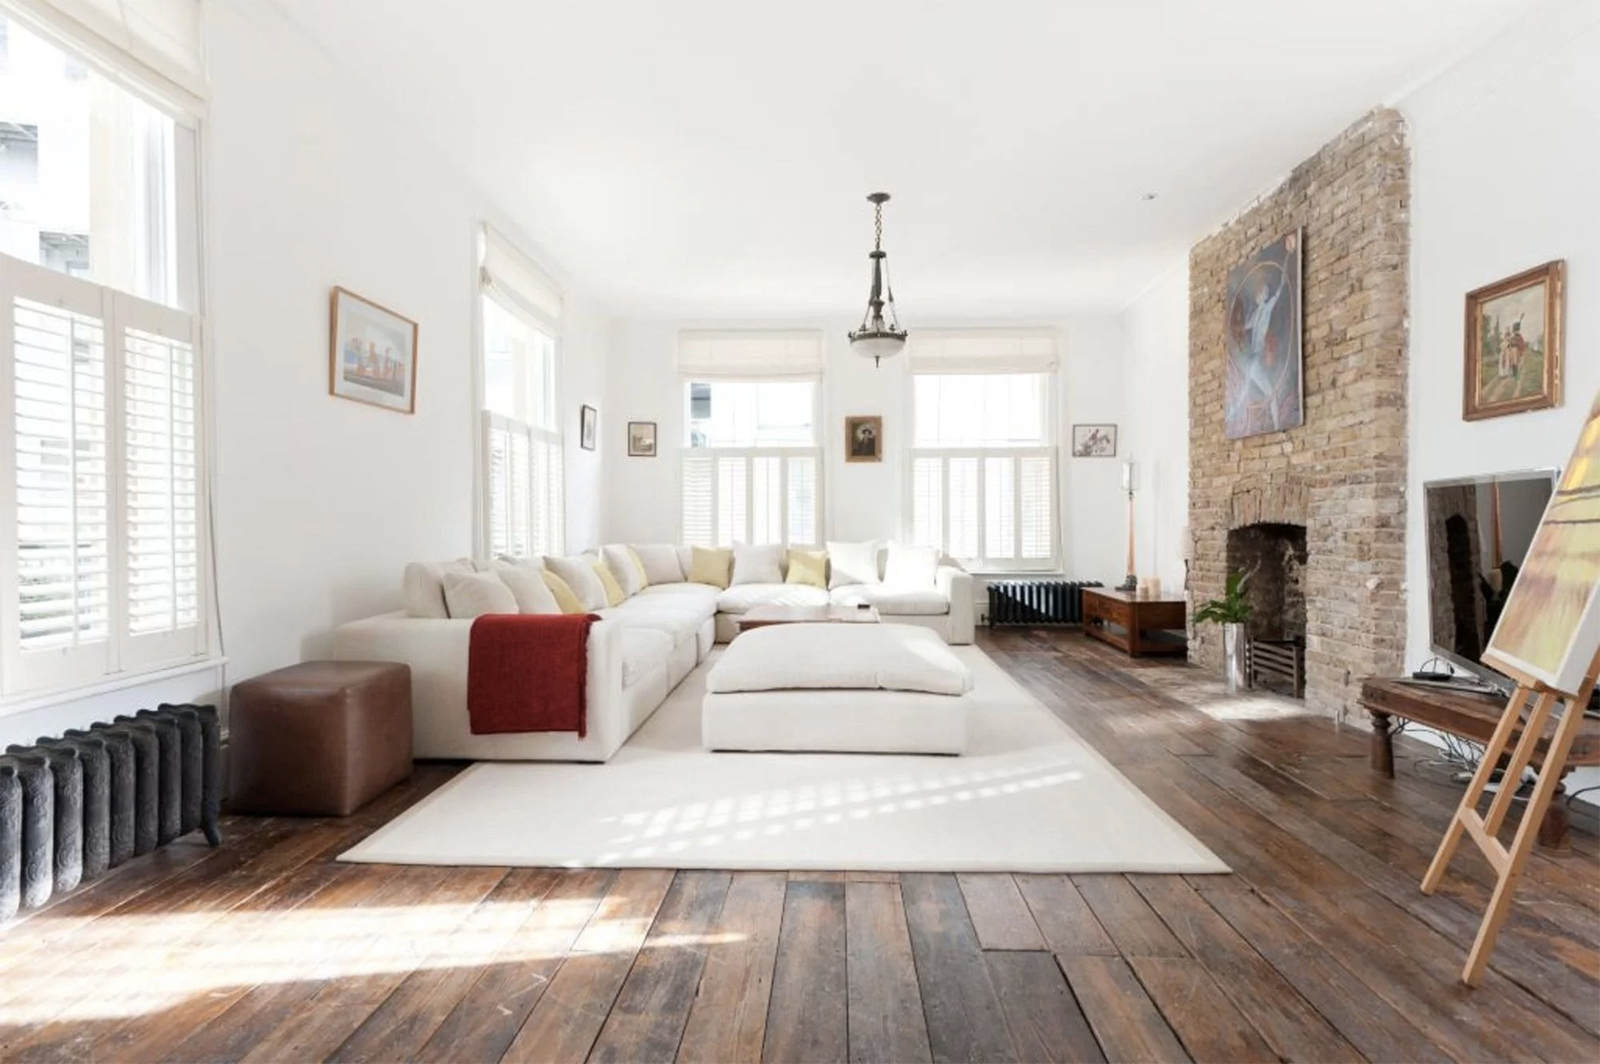 Converted brewery for sale, Clerkenwell - the most unusual London homes for sale right now